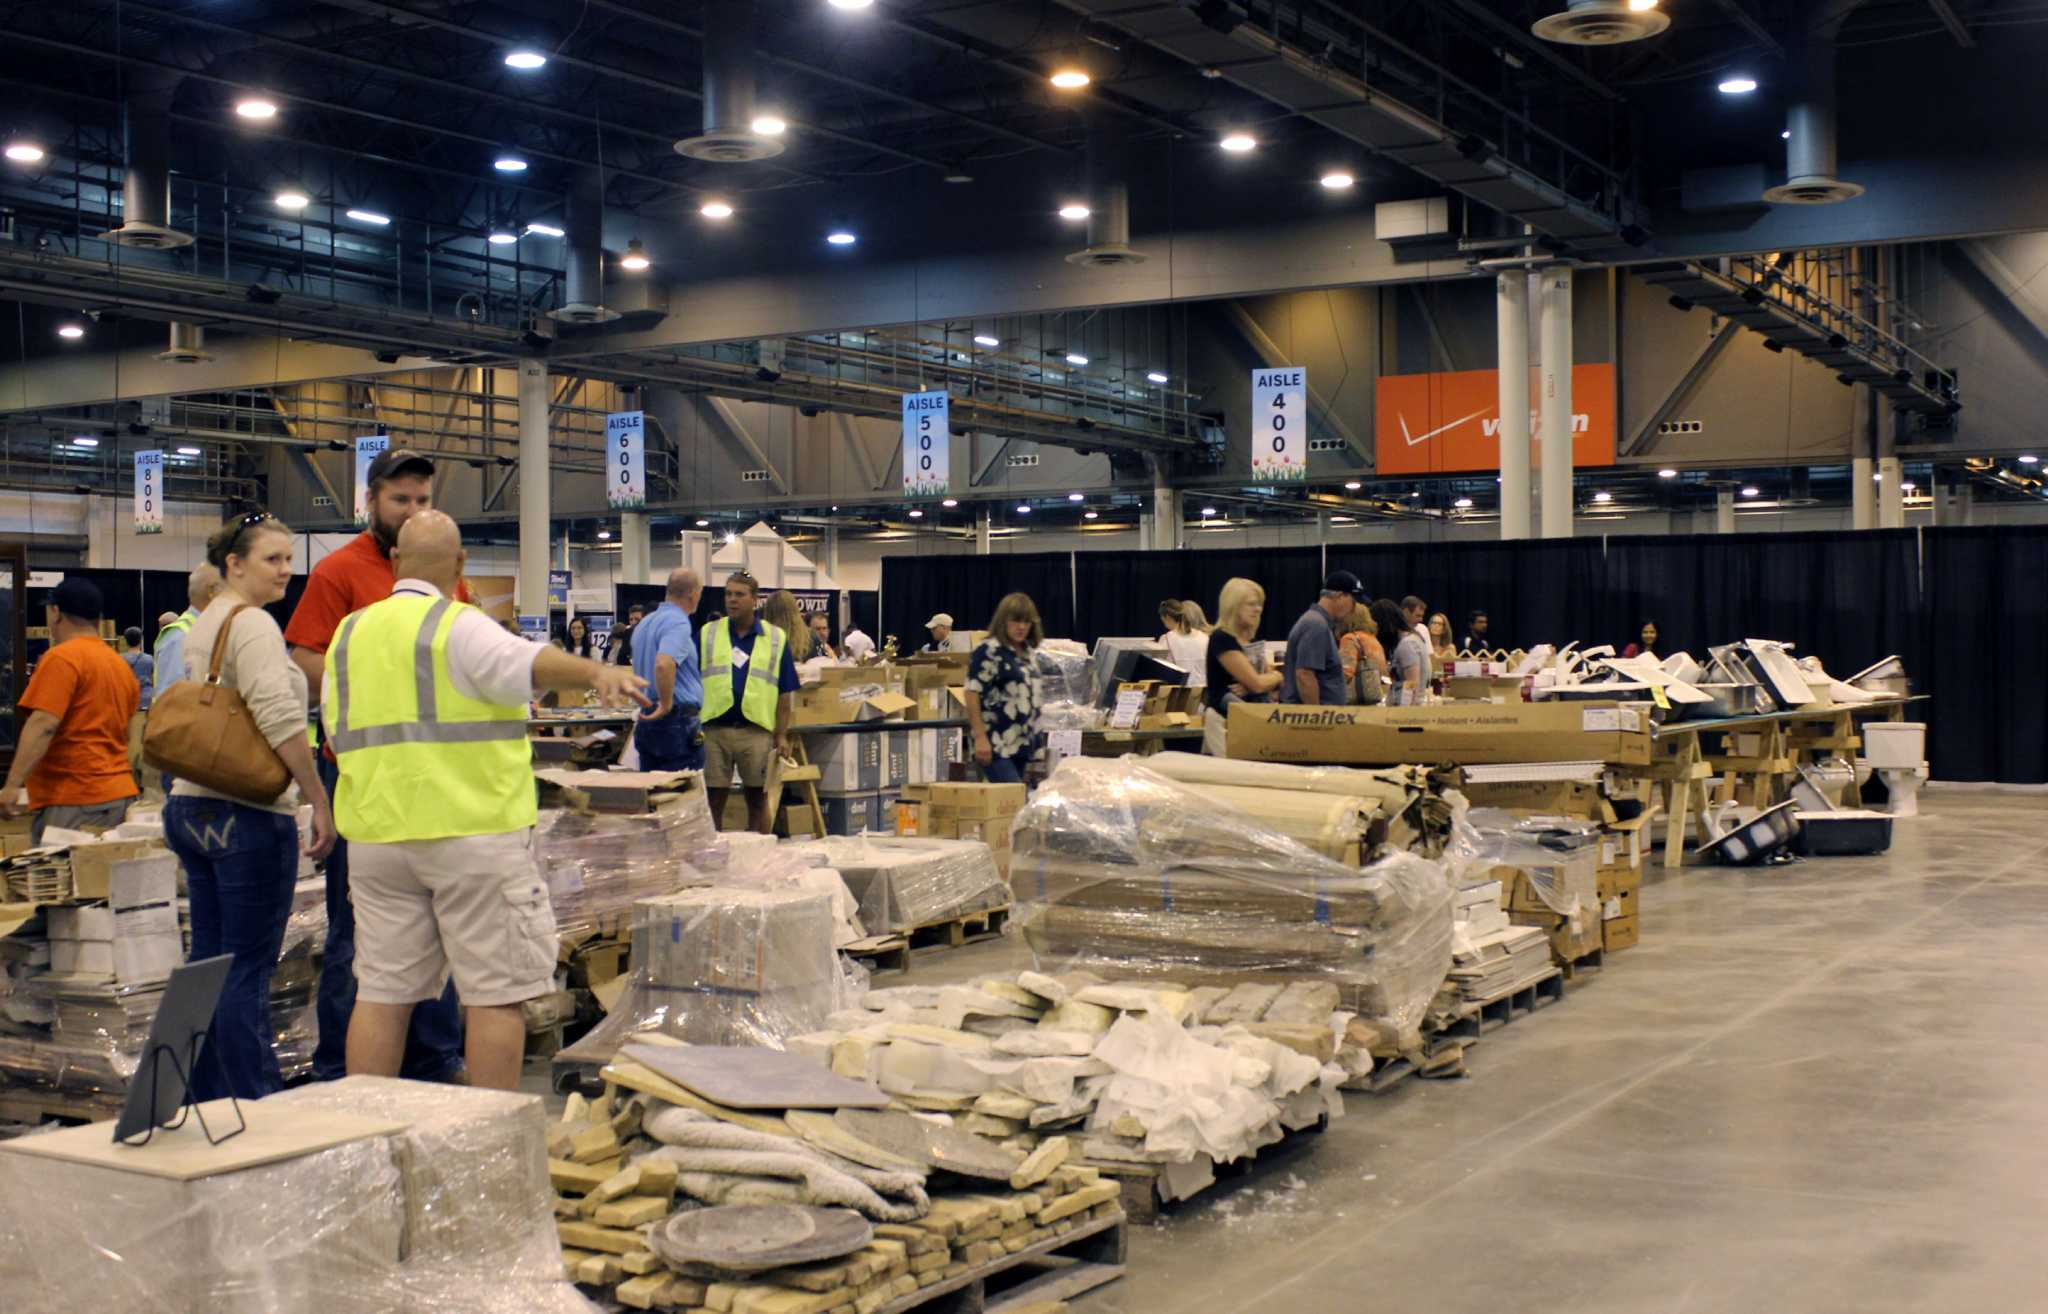 Home And Garden Shows Charity Garage Sale Offers Great Deals - Home and garden show dallas